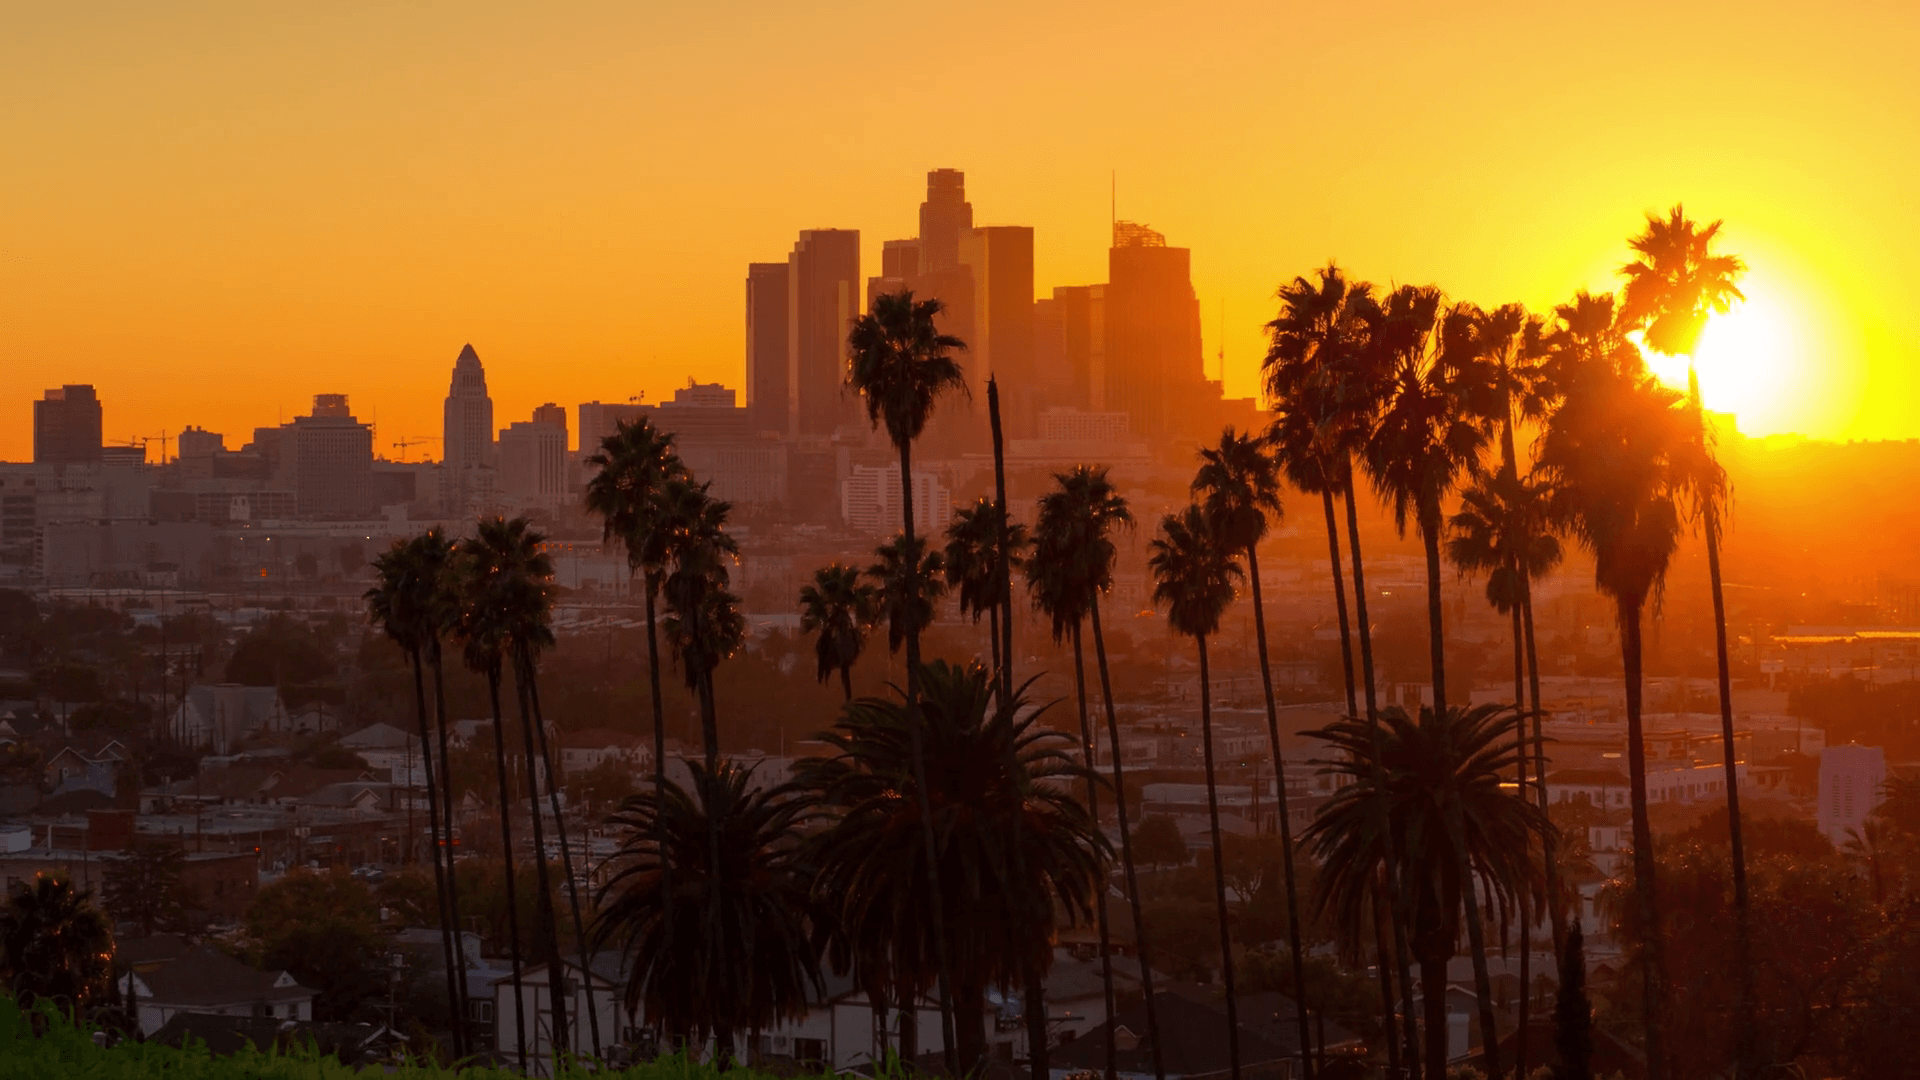 Los Angeles 4k Wallpapers Top Free Los Angeles 4k Backgrounds Wallpaperaccess